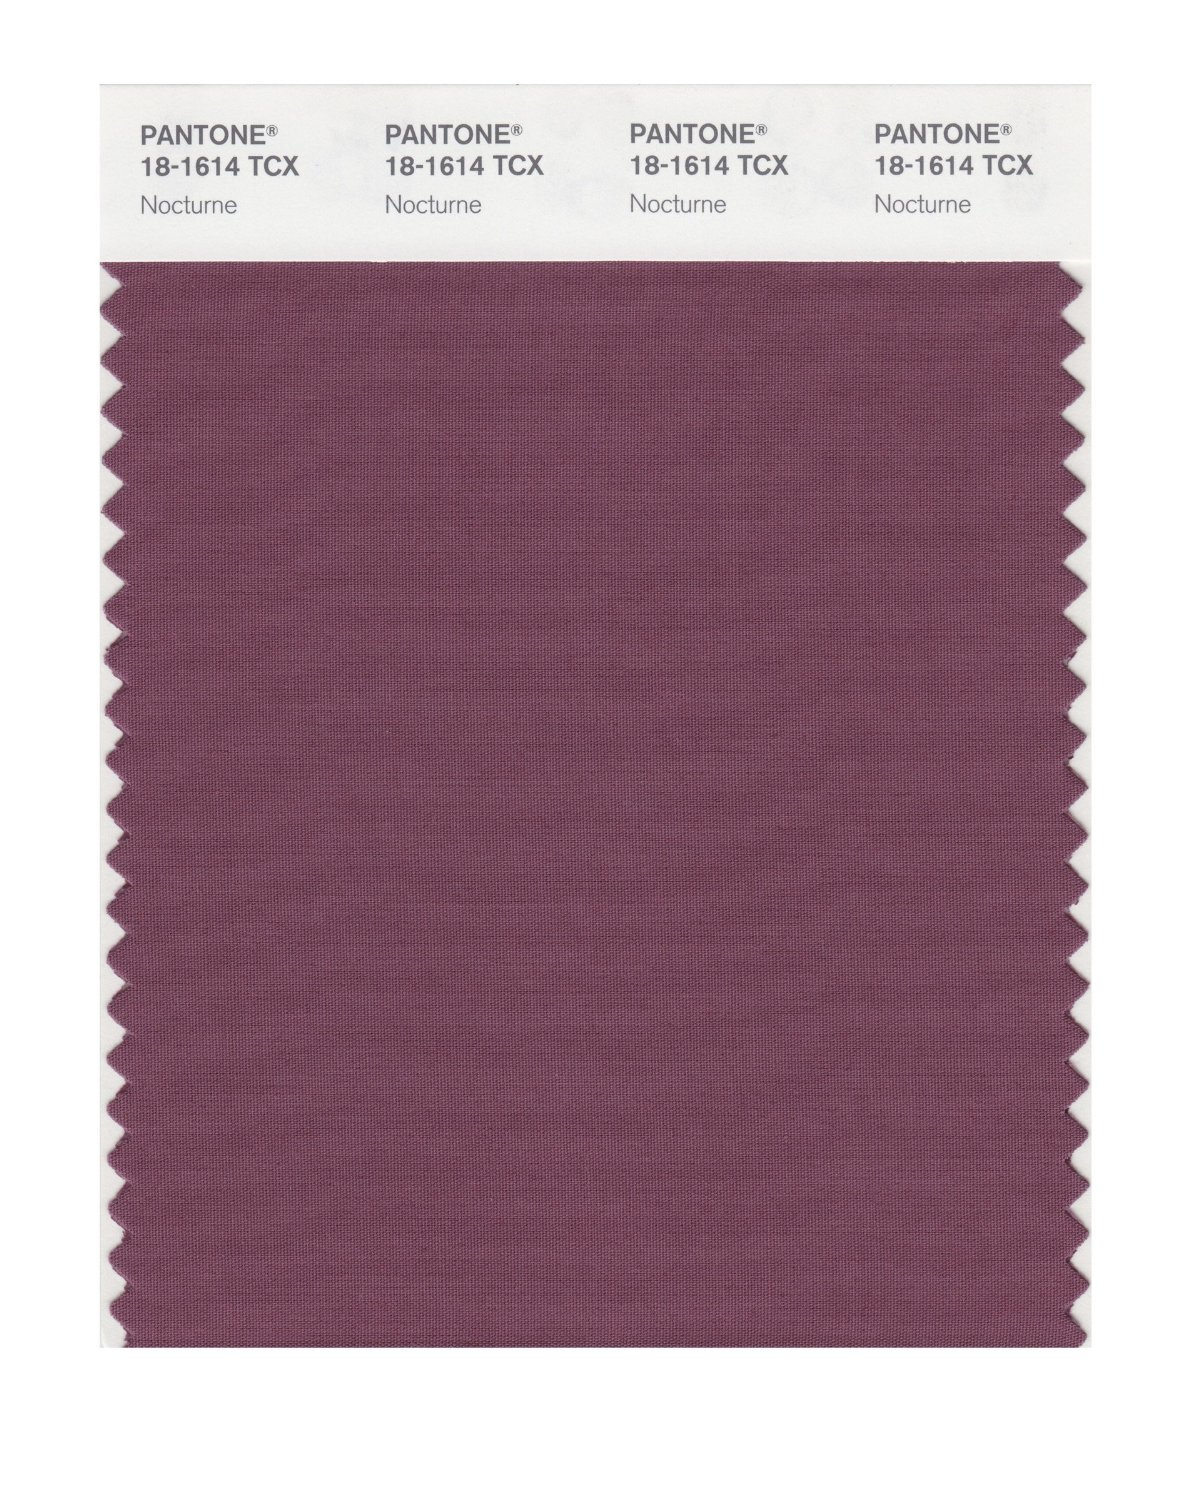 Pantone Smart Swatch 18-1614 Nocturne